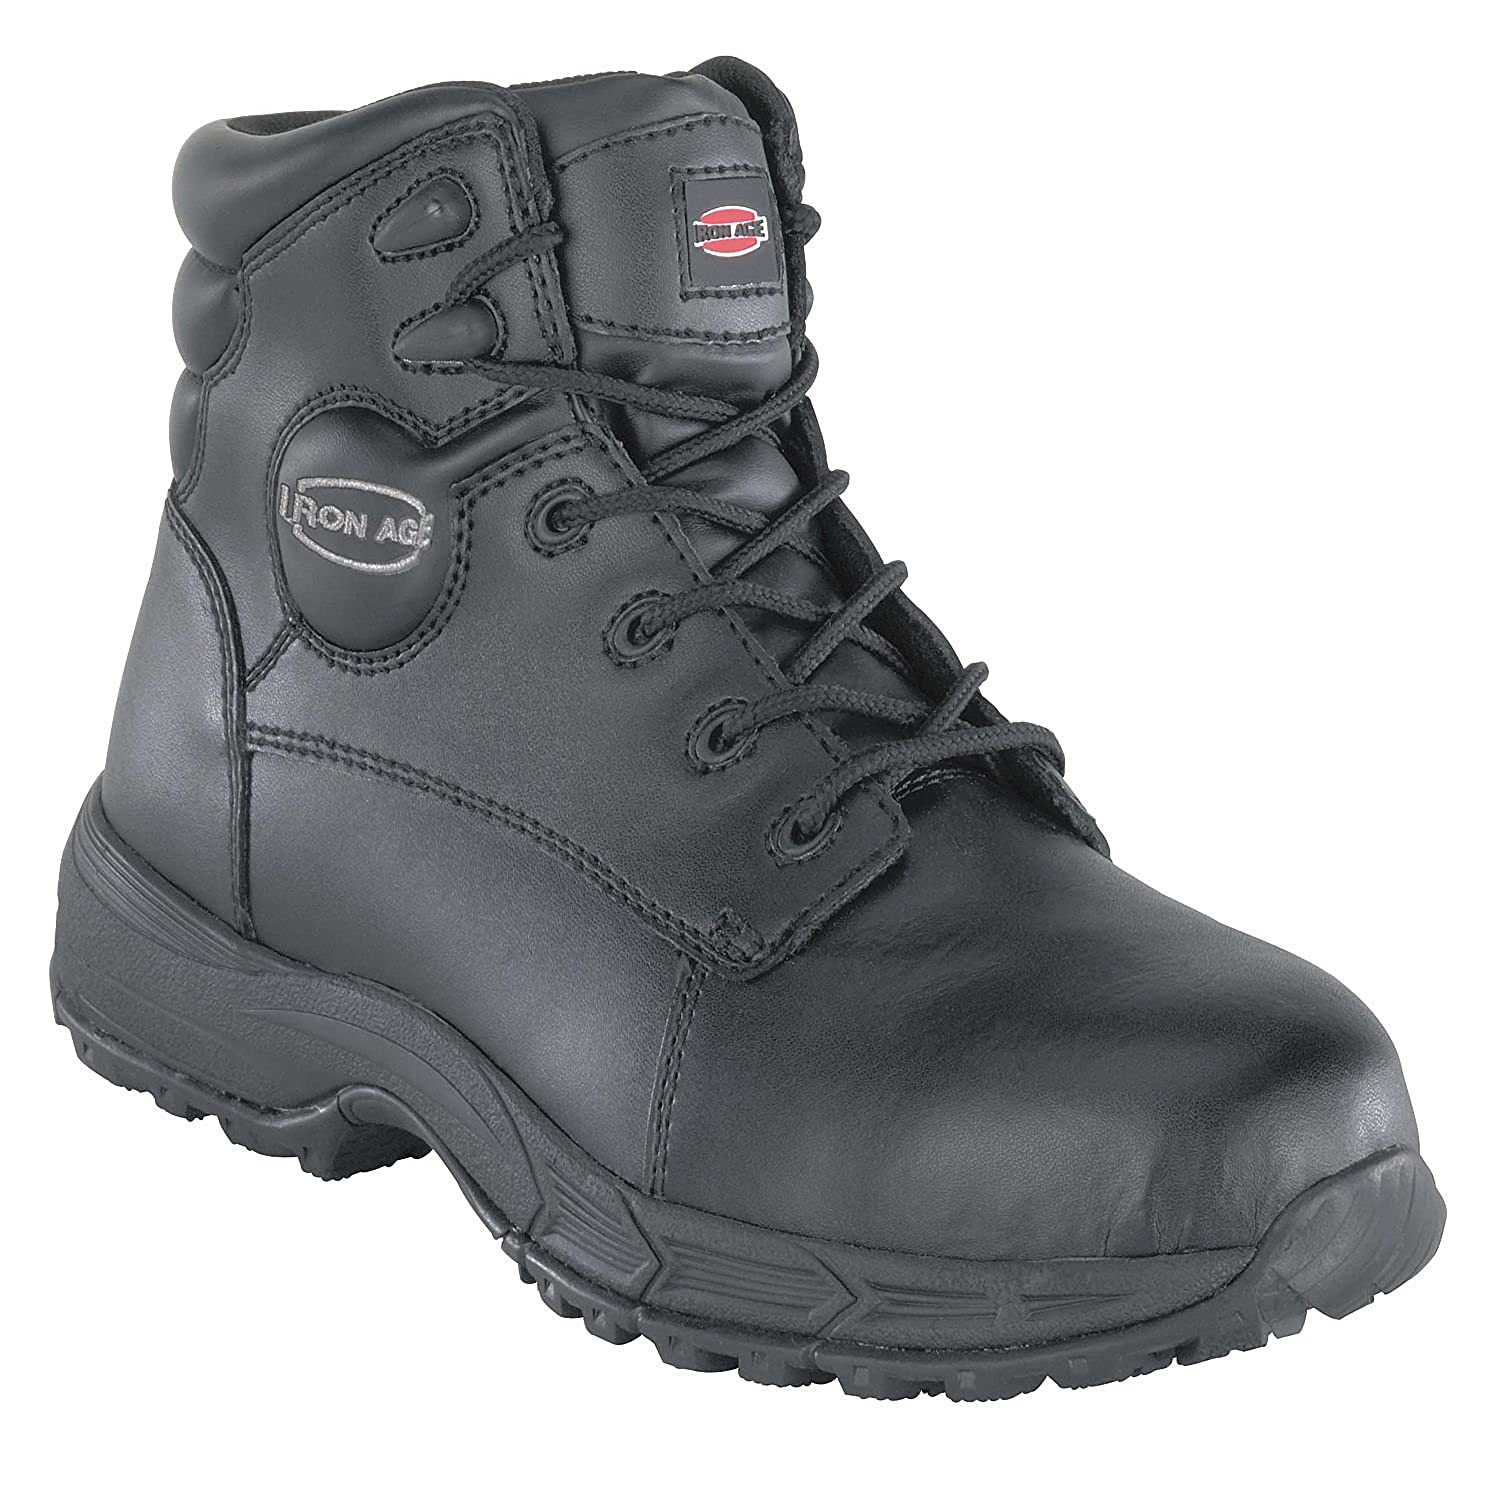 Leather Upper Material Size 6 6H Mens Athletic Style Work Boots Black IA5150-6W Steel Toe Type Iron Age